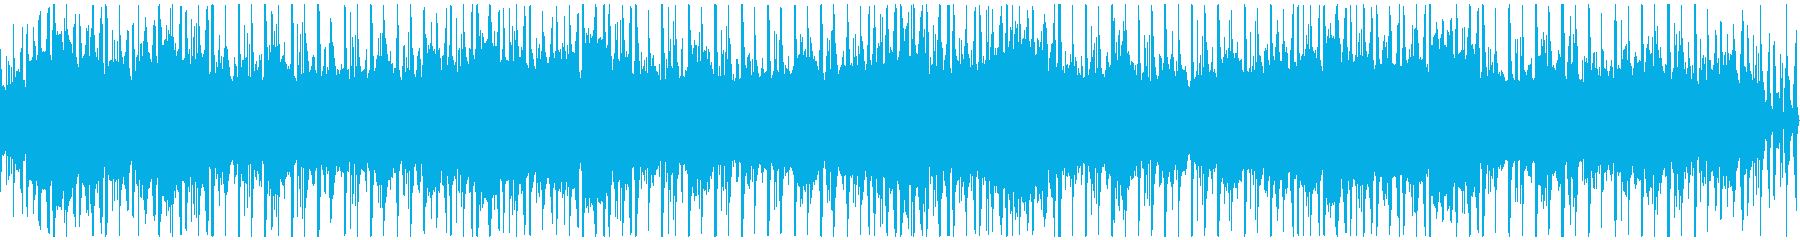 A gentle and beautiful song with a snowplow motif's reproduced waveform